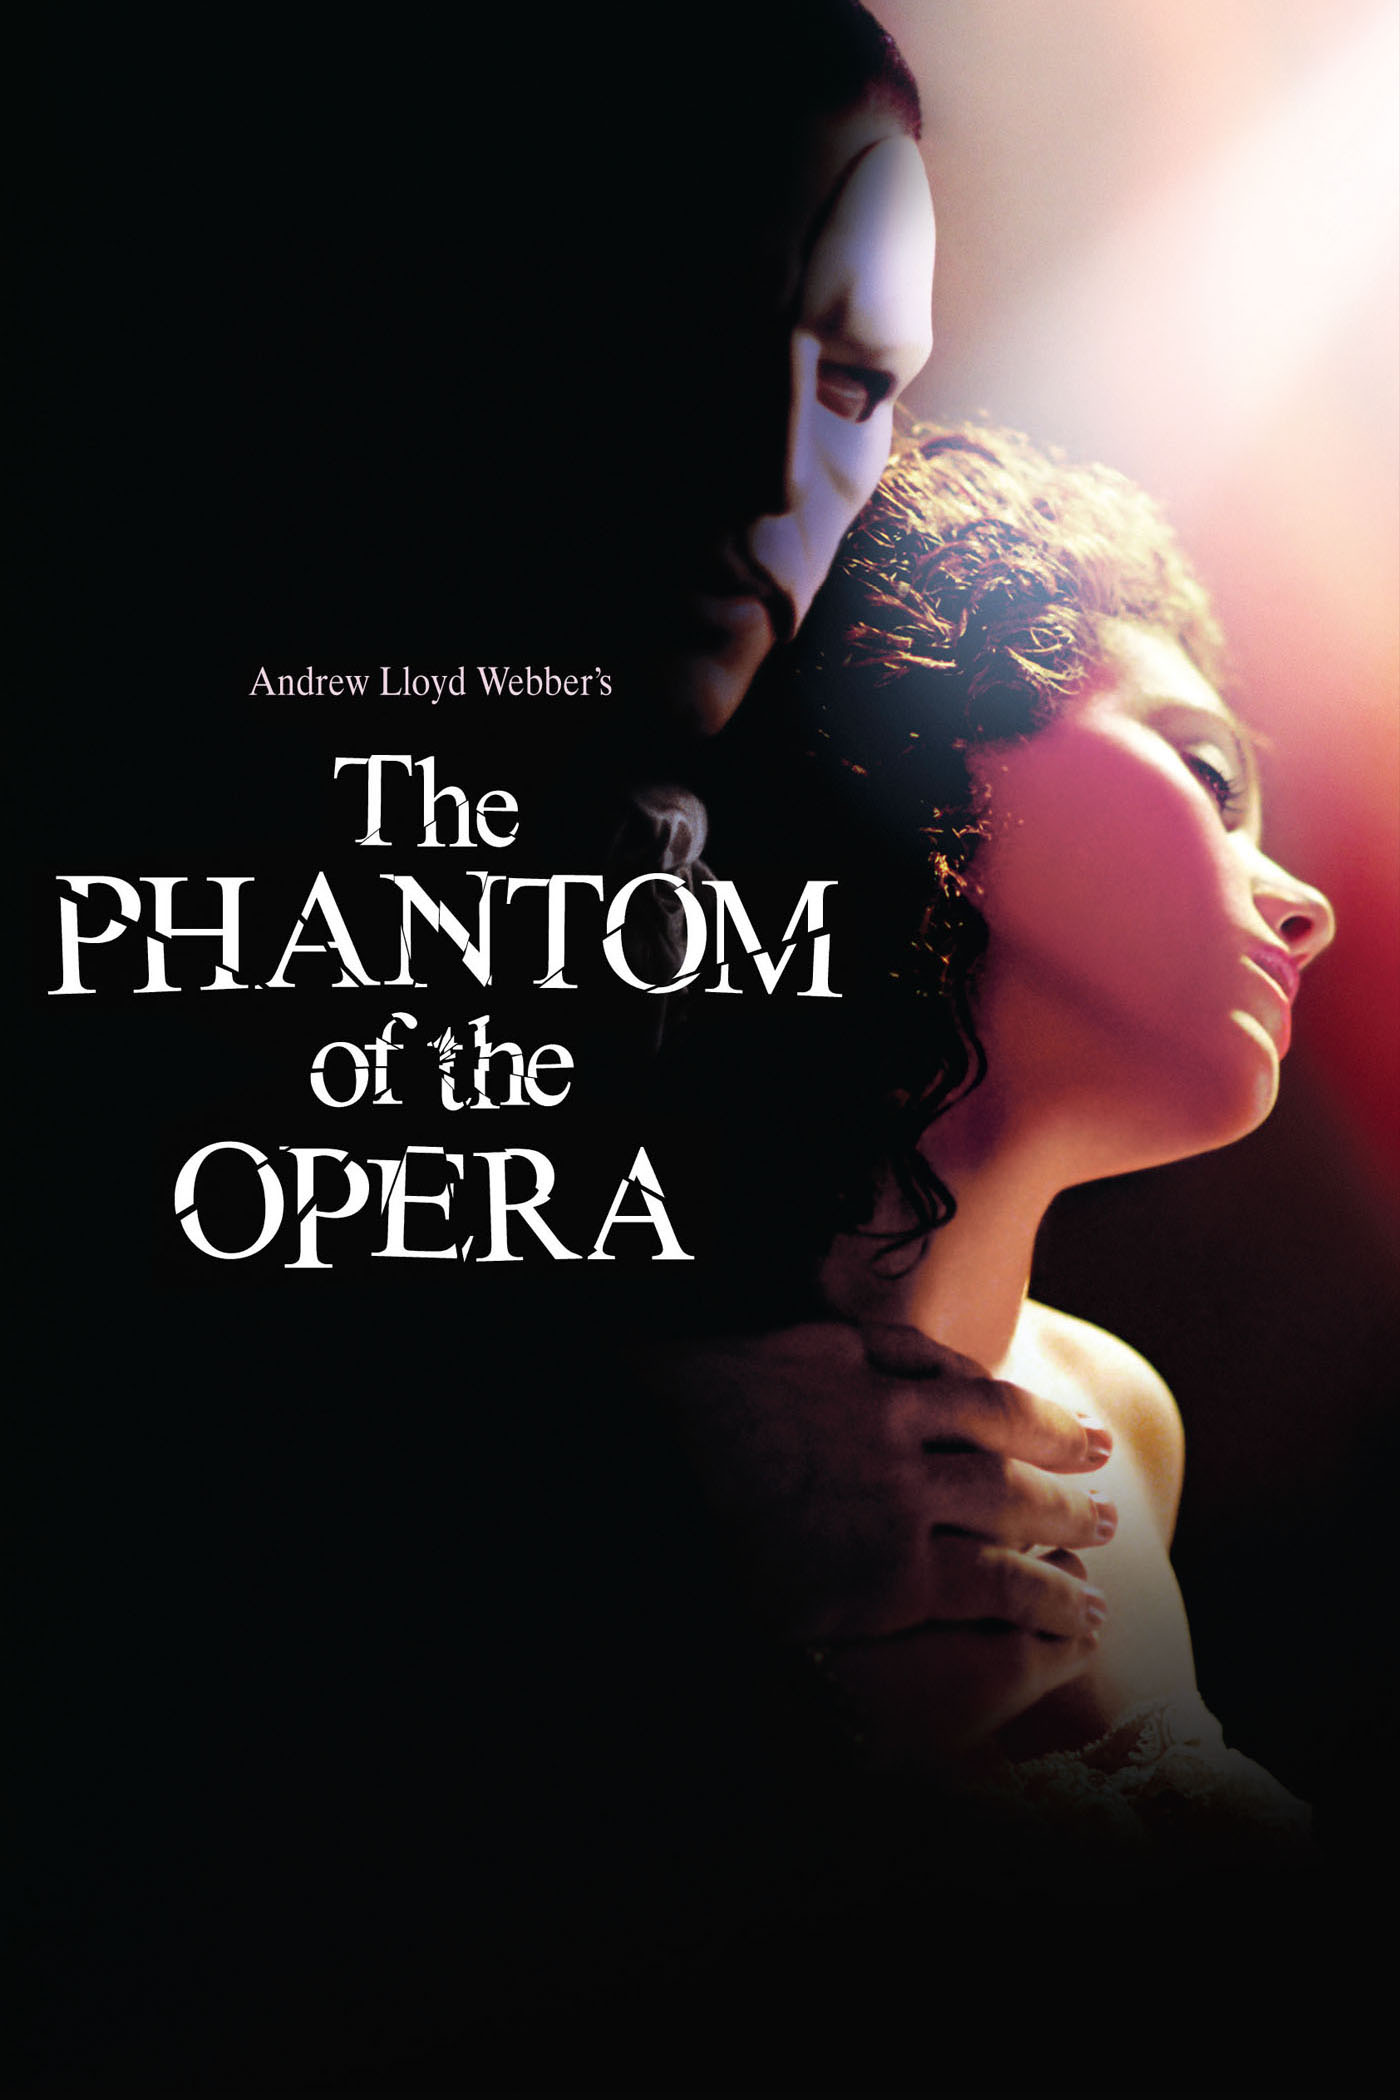 a review of phantom of the opera movie The phantom of the opera (2004) full movie online for free in hd quality with english subtitles the phantom of the opera old school reviews february 04, 2013.